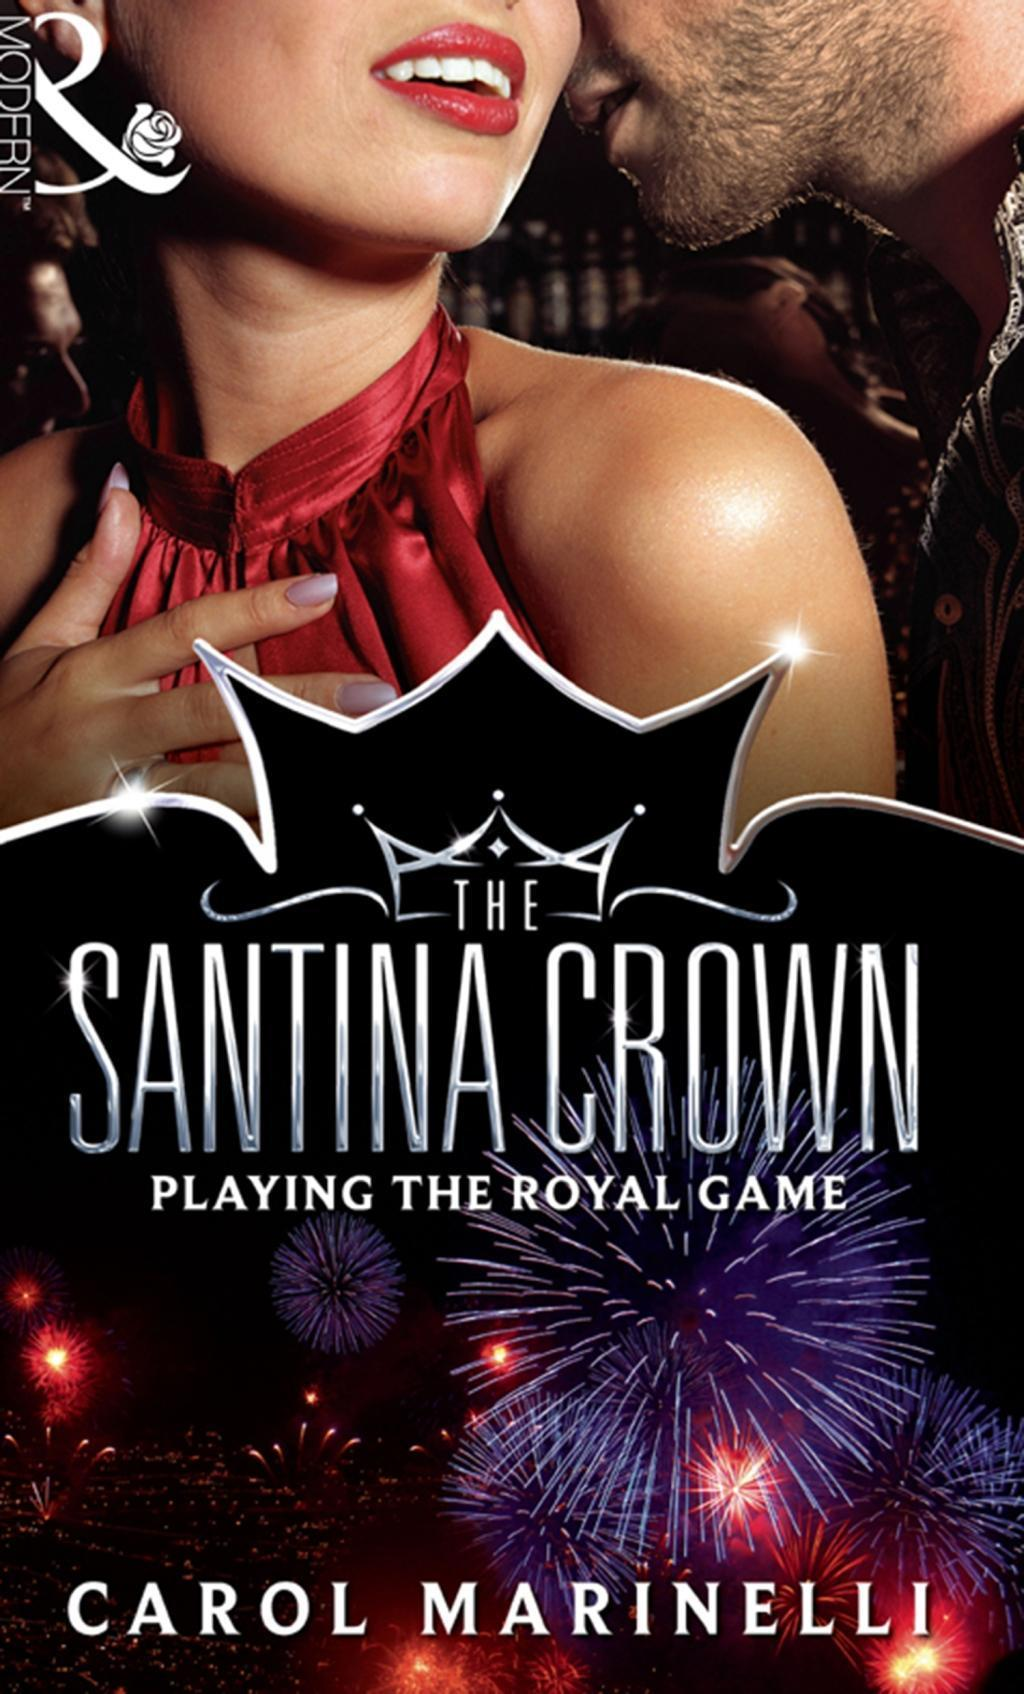 Playing the Royal Game (Mills & Boon M&B) (The Santina Crown, Book 8)